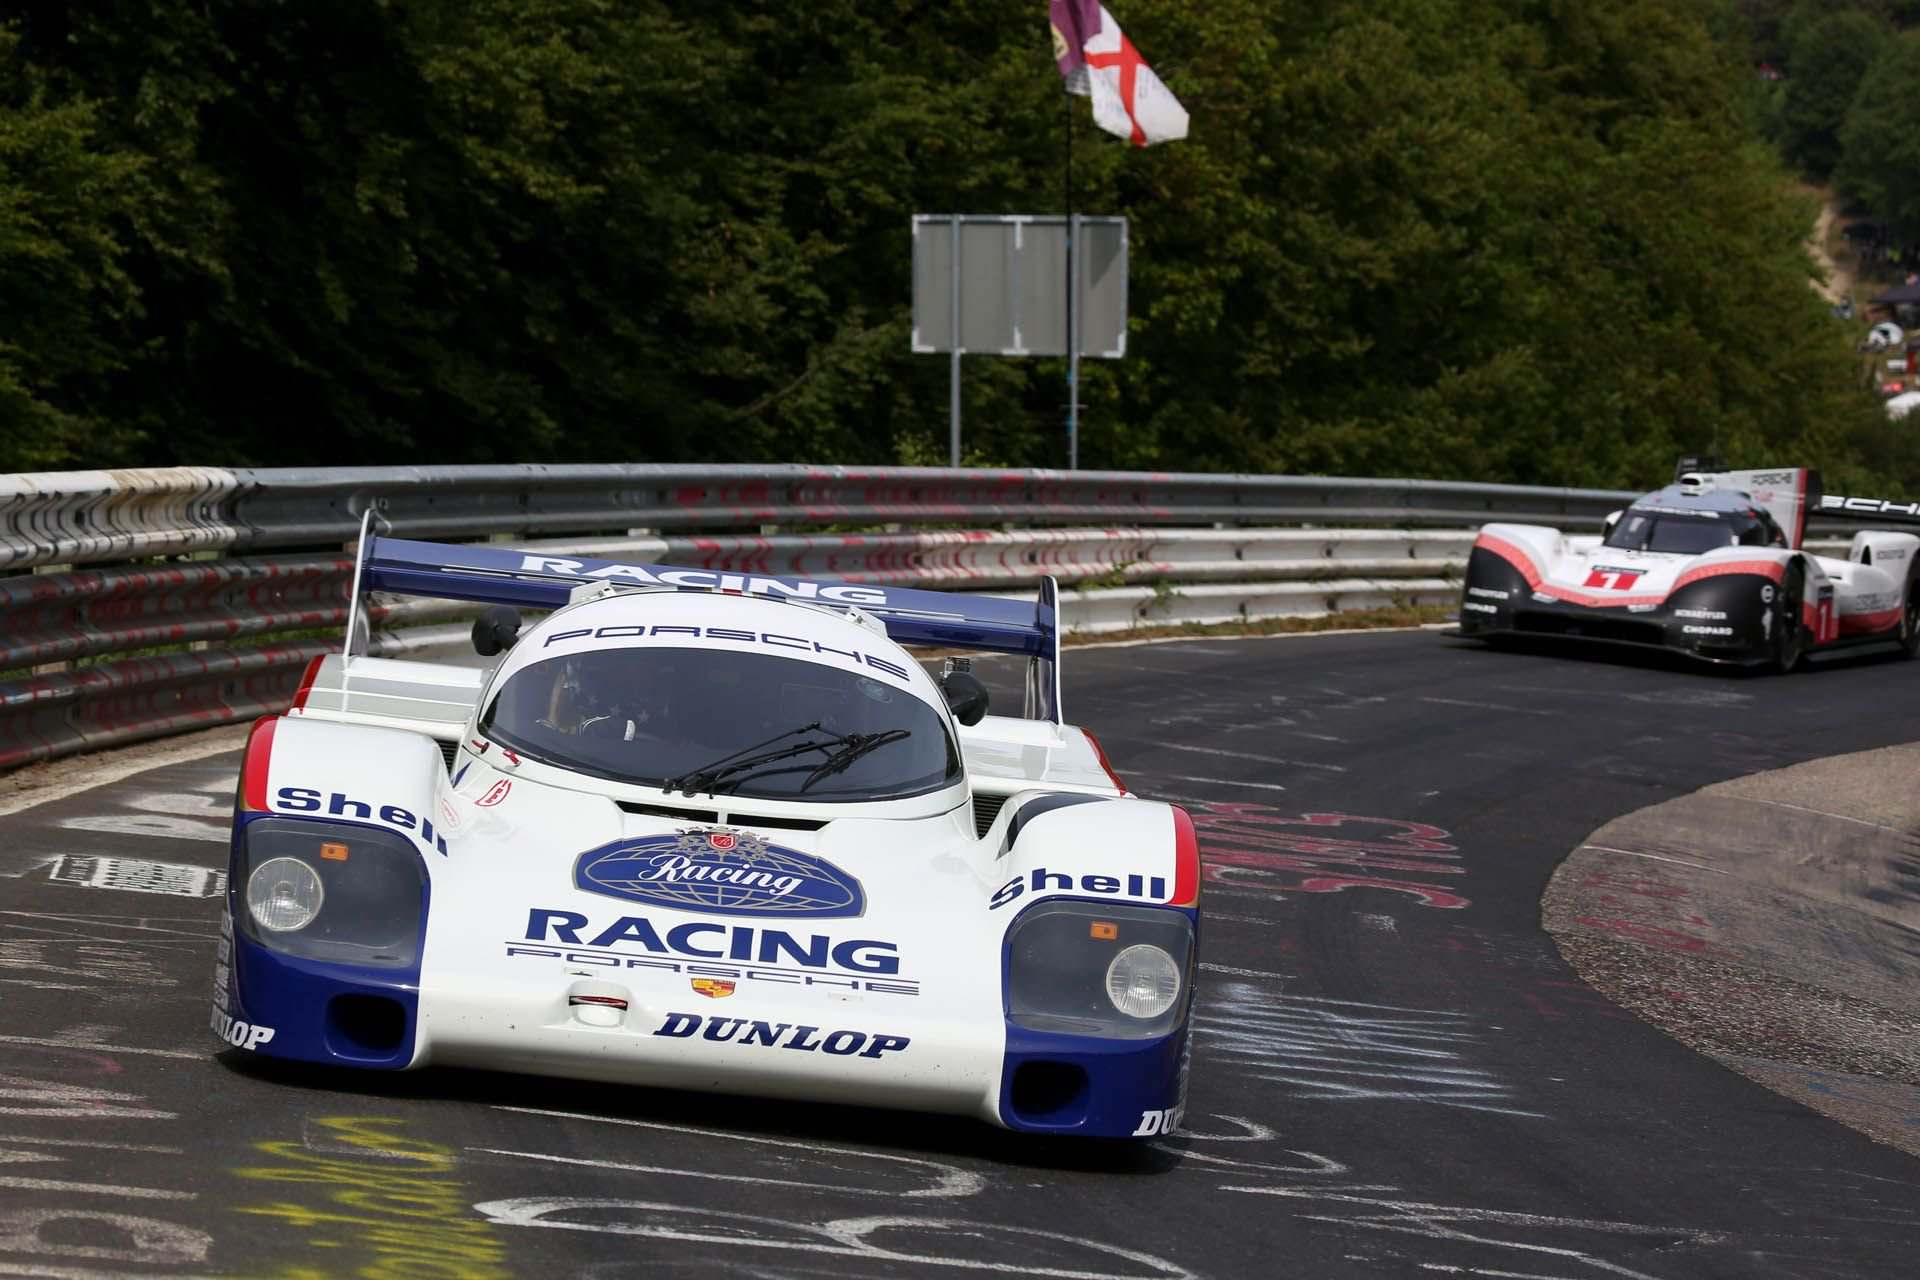 Porsche 919 Hybrid Evo and 956 at Nurburgring (5)